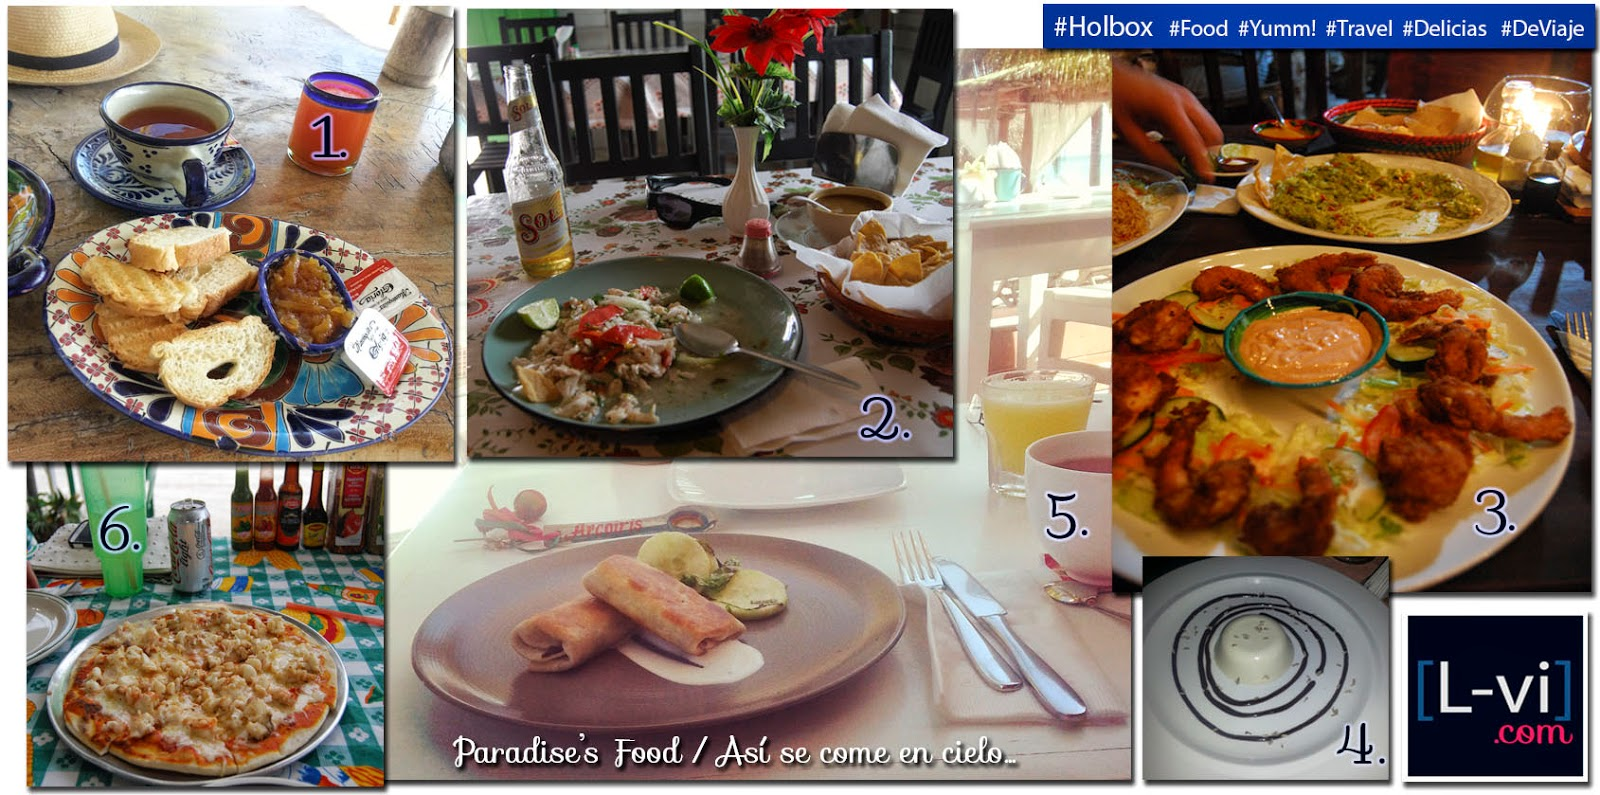 [Paradise's Food ]Why I ♥ Holbox by Lucebona. L-vi.com